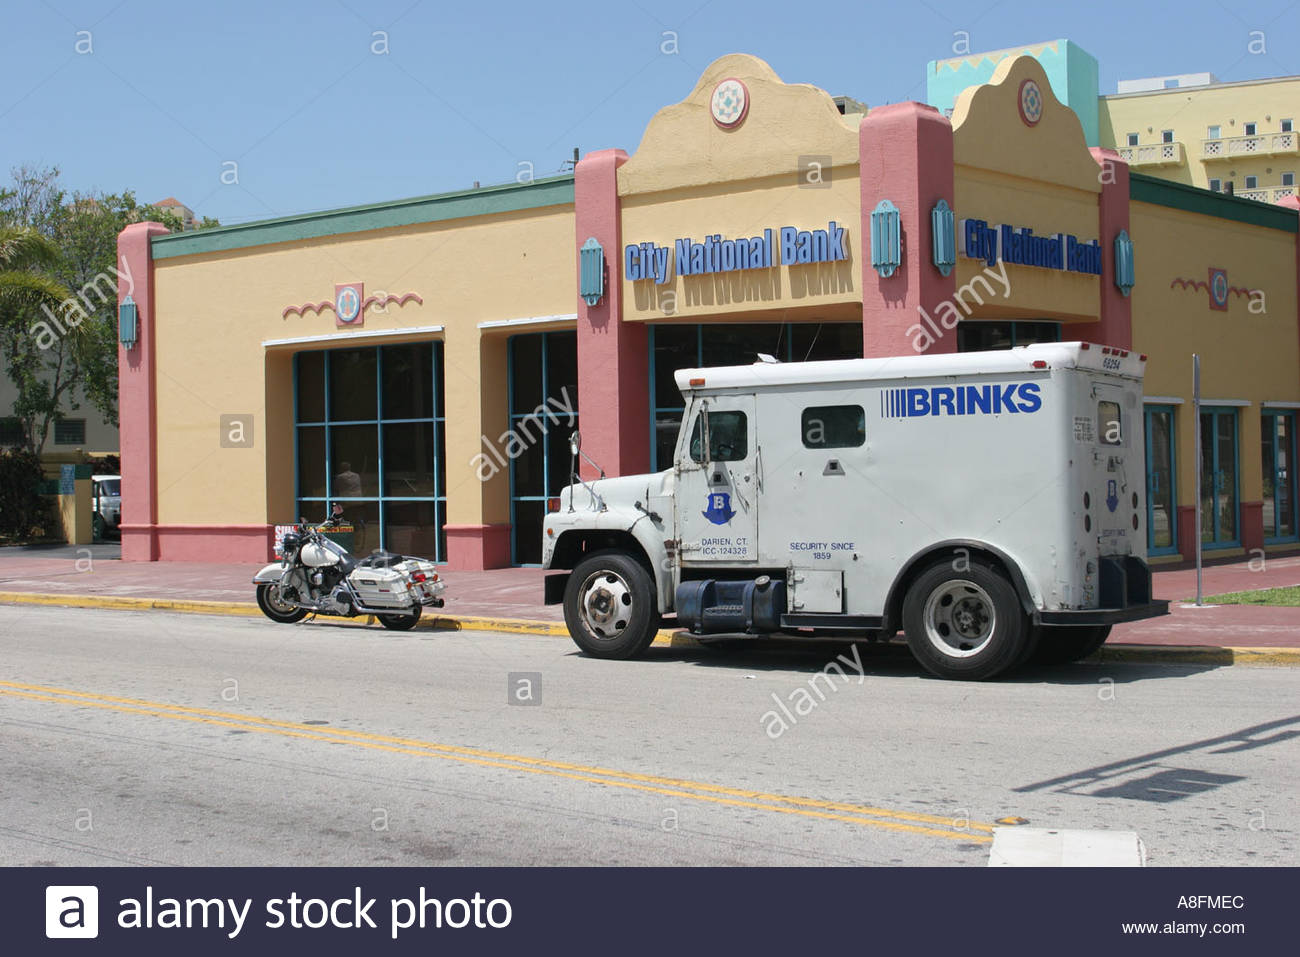 Miami beach florida collins avenue brinks armored truck city national bank money security stock image